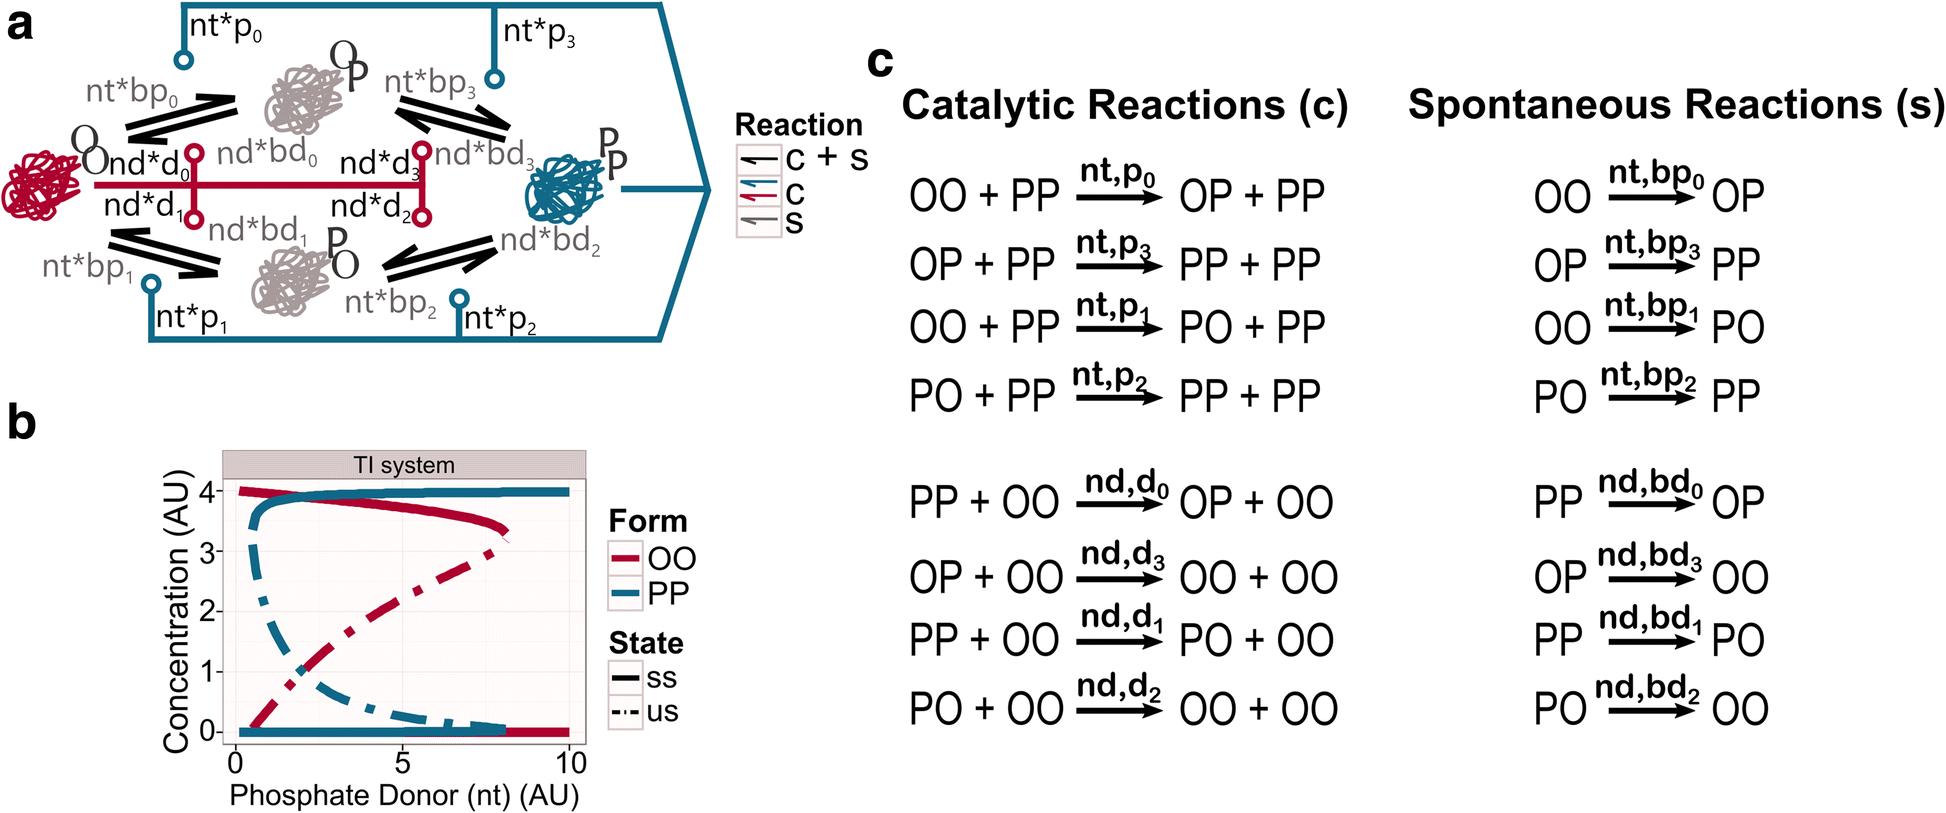 Single Molecules Can Operate As Primitive Biological Sensors The Circuit Does This With A Simple Oscillator Oscillator39s Main Fig 2